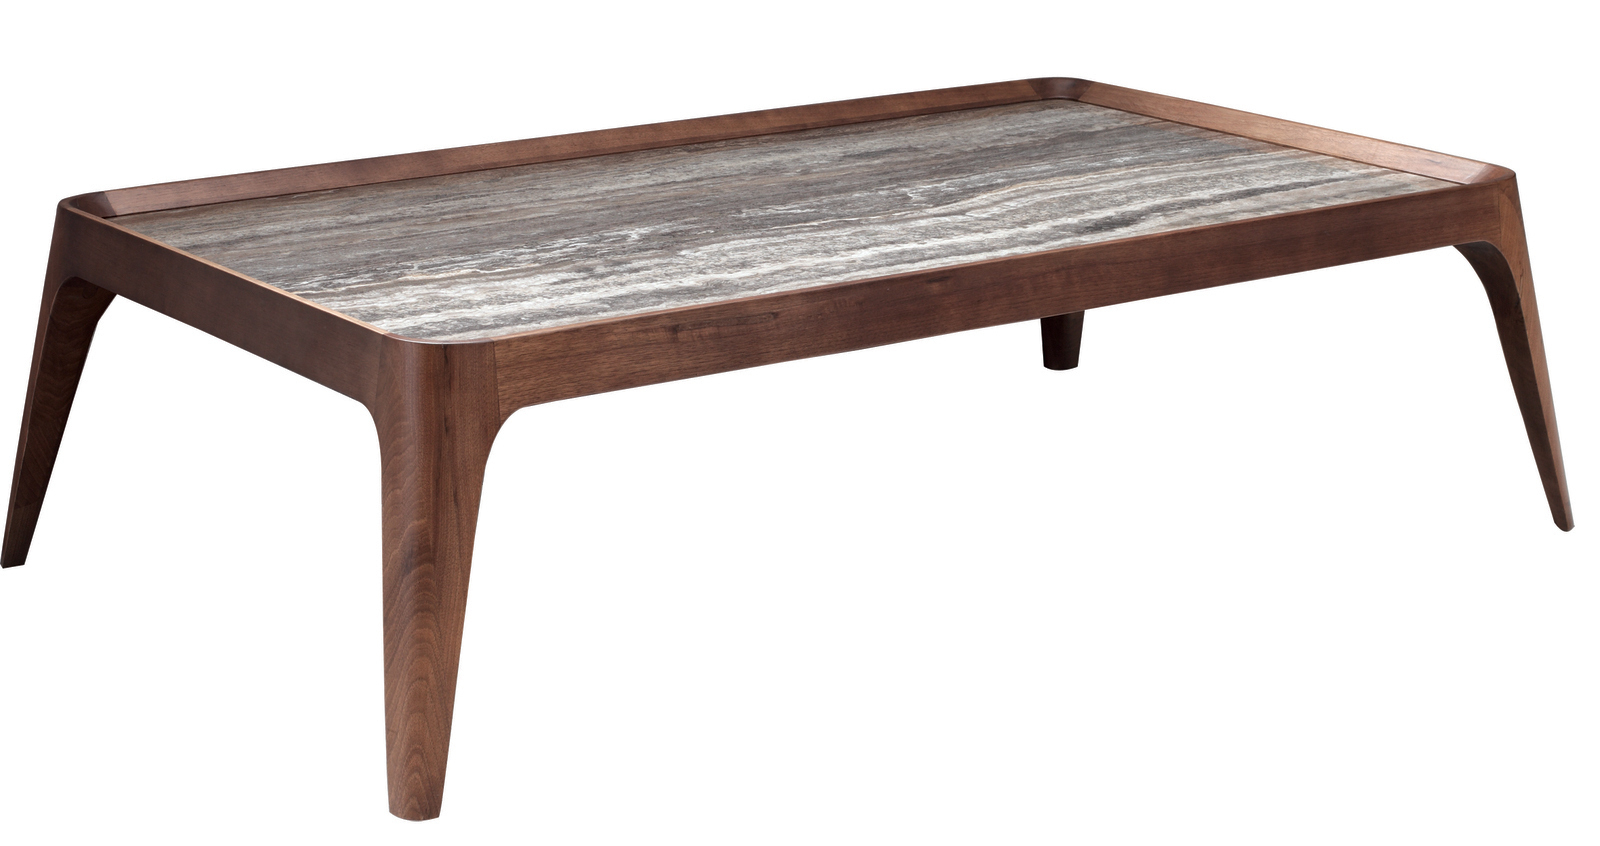 Recent Brisbane Oval Coffee Tables Within Coffee Table Wood Designer Marble Contemporary Furniture Brisbane (View 15 of 20)